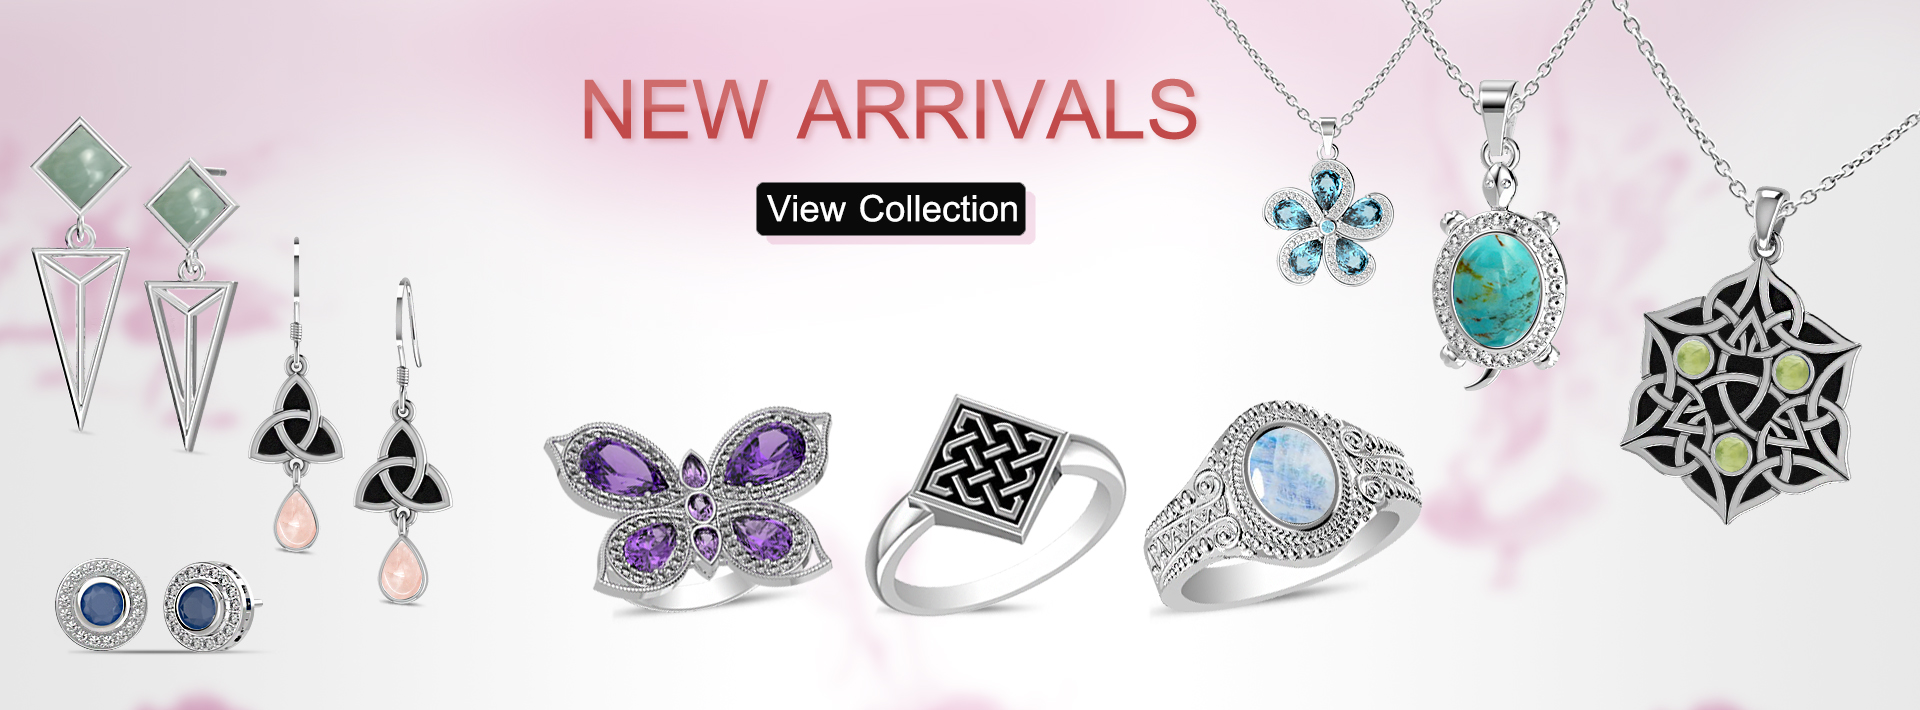 New Arrivals Collections